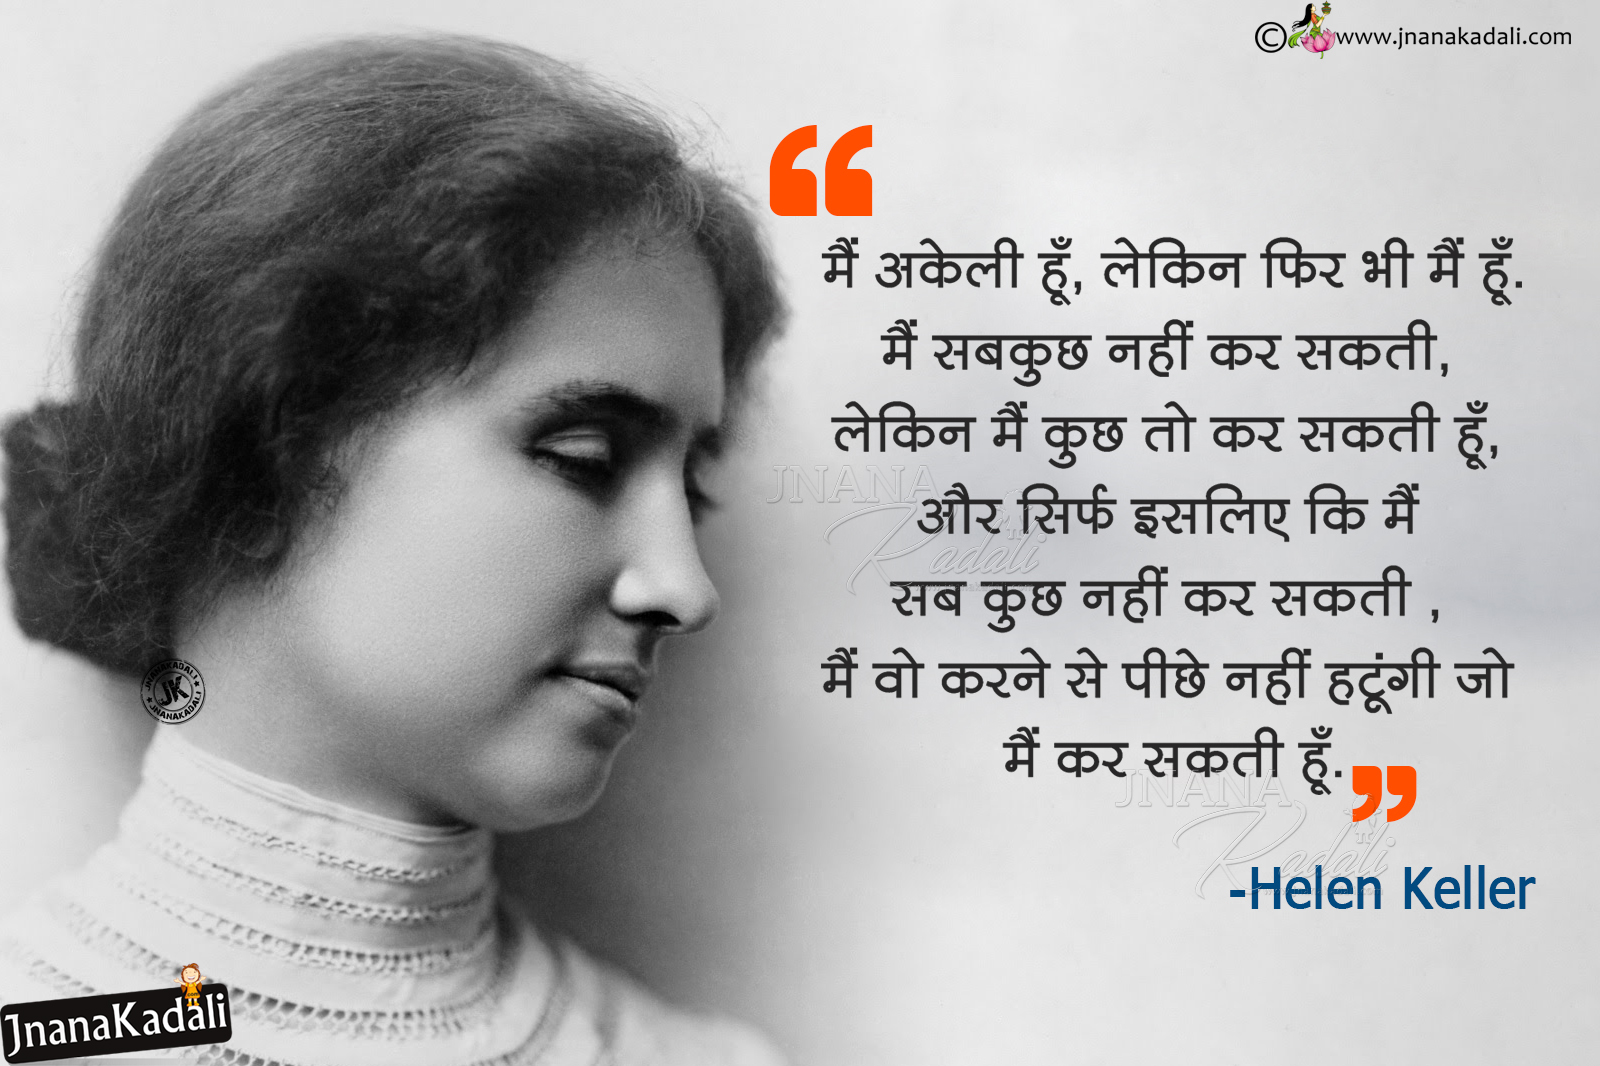 Helen keller positive messages quotes in hindi hindi motivational hindi quotes helen keller messages sayings in telugu daily hindi motivational attitude quotes hd thecheapjerseys Images